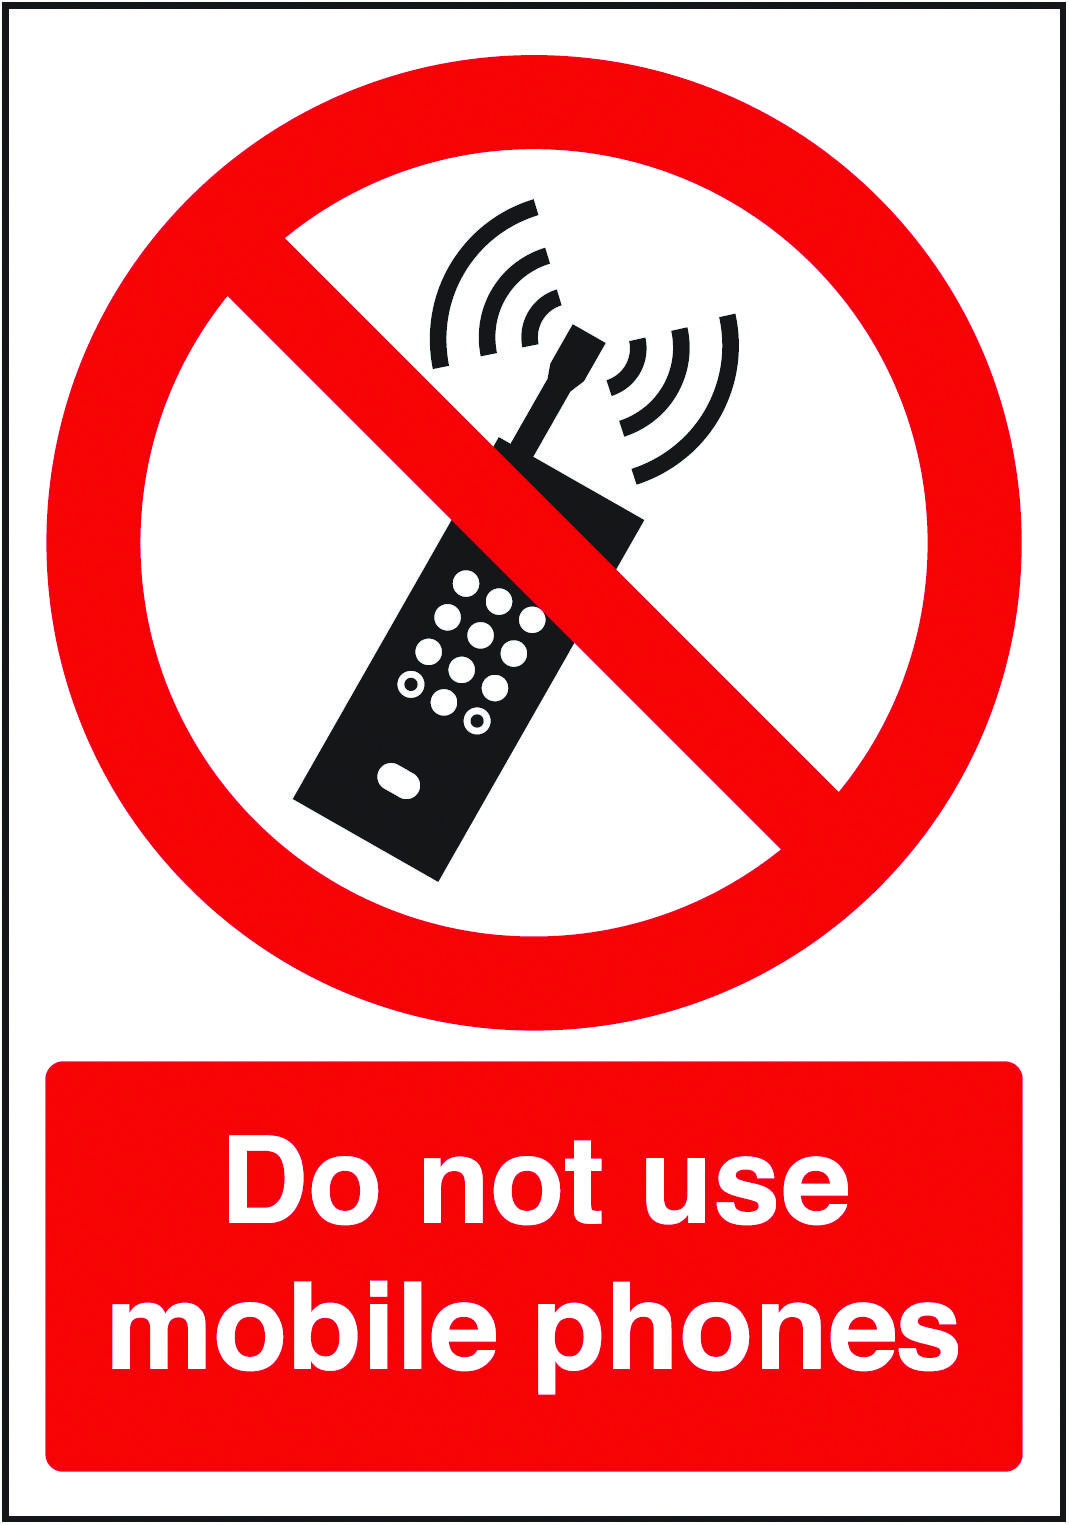 Do not use mobile phones sign. Beaverswood